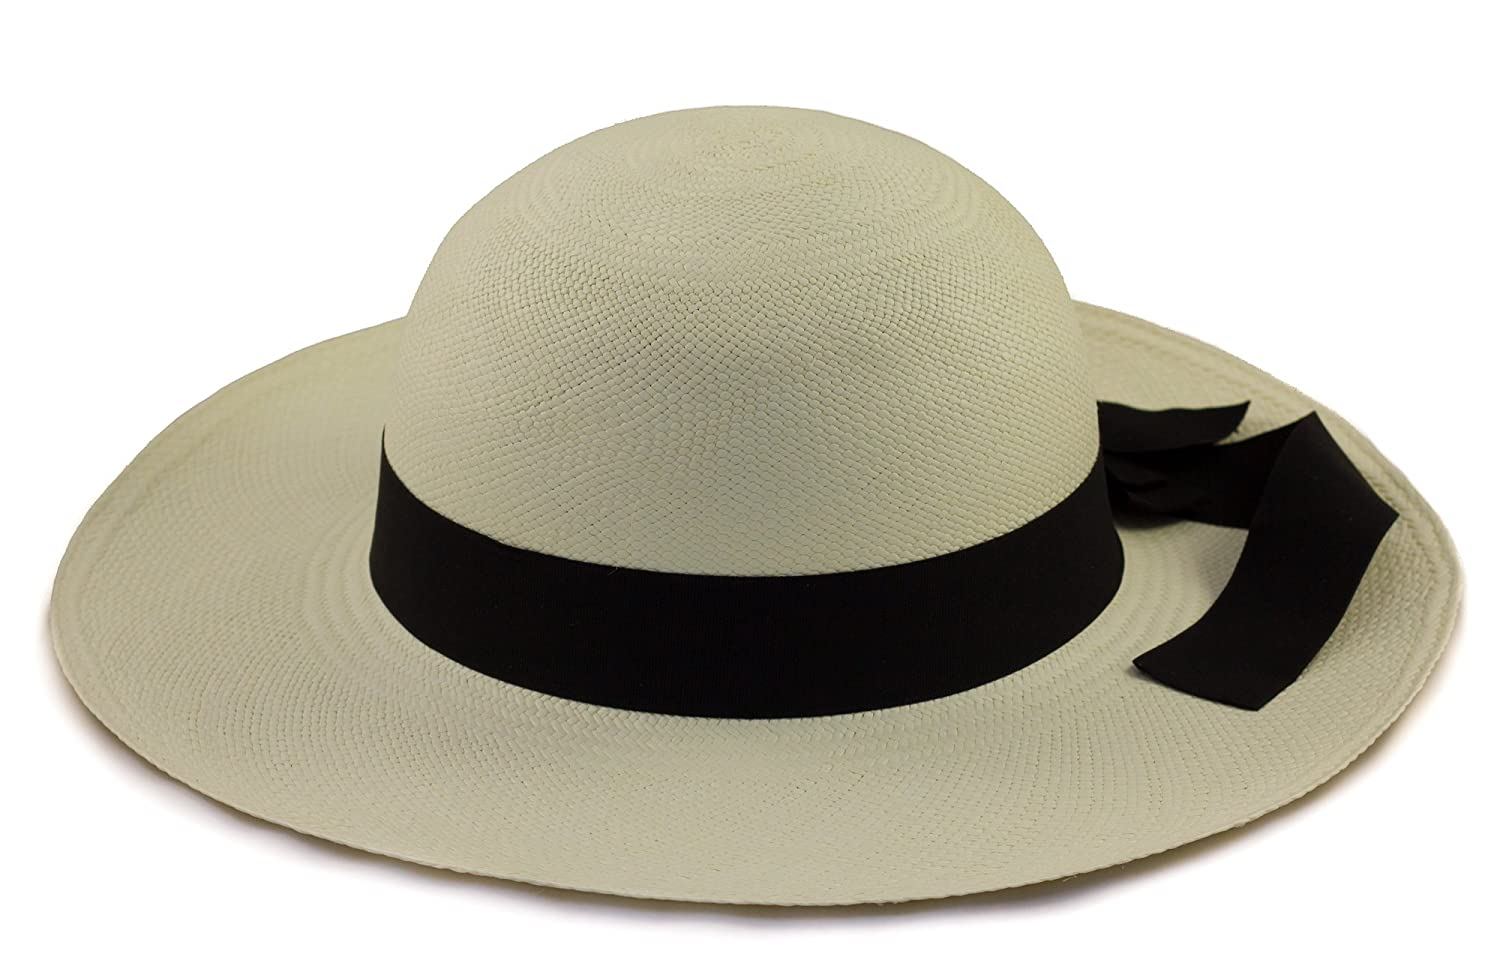 b3dd9785c Tumi Ladies Panama Hat - Cream with Black Band – Rollable/Foldable –  Handwoven from natural fibres.